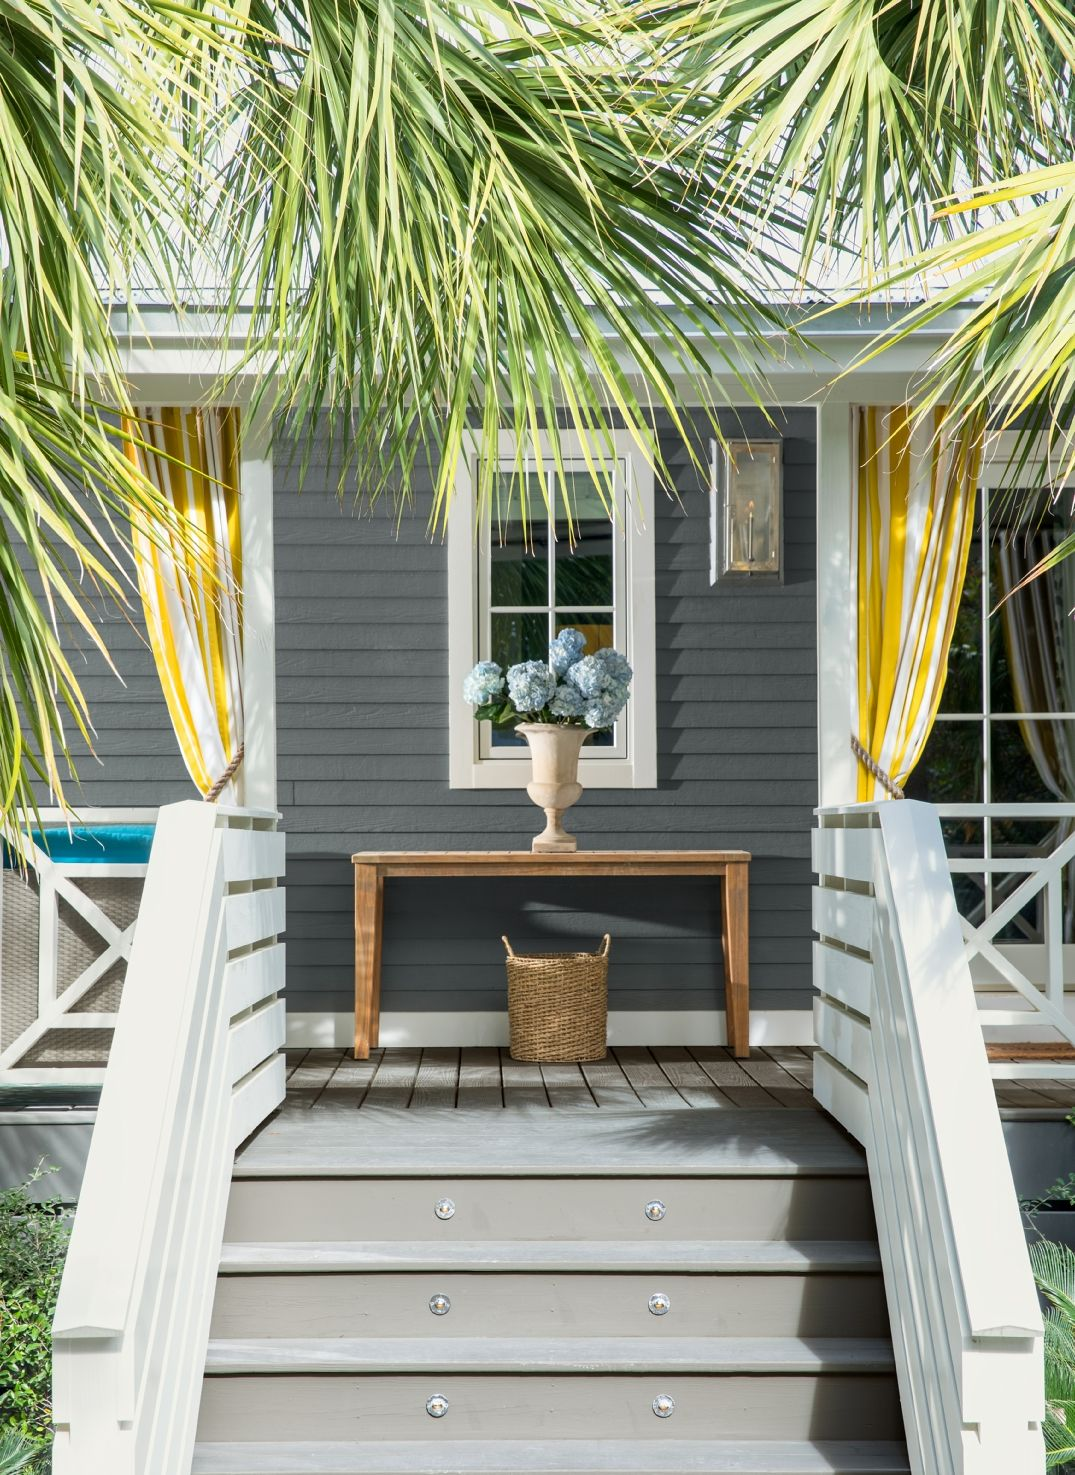 A Monochromatic Exterior Painted In Gray With Colors Like Benjamin Moore Whale 2134 40 And Distant Oc 68 Can Be Great Backdrop For Design